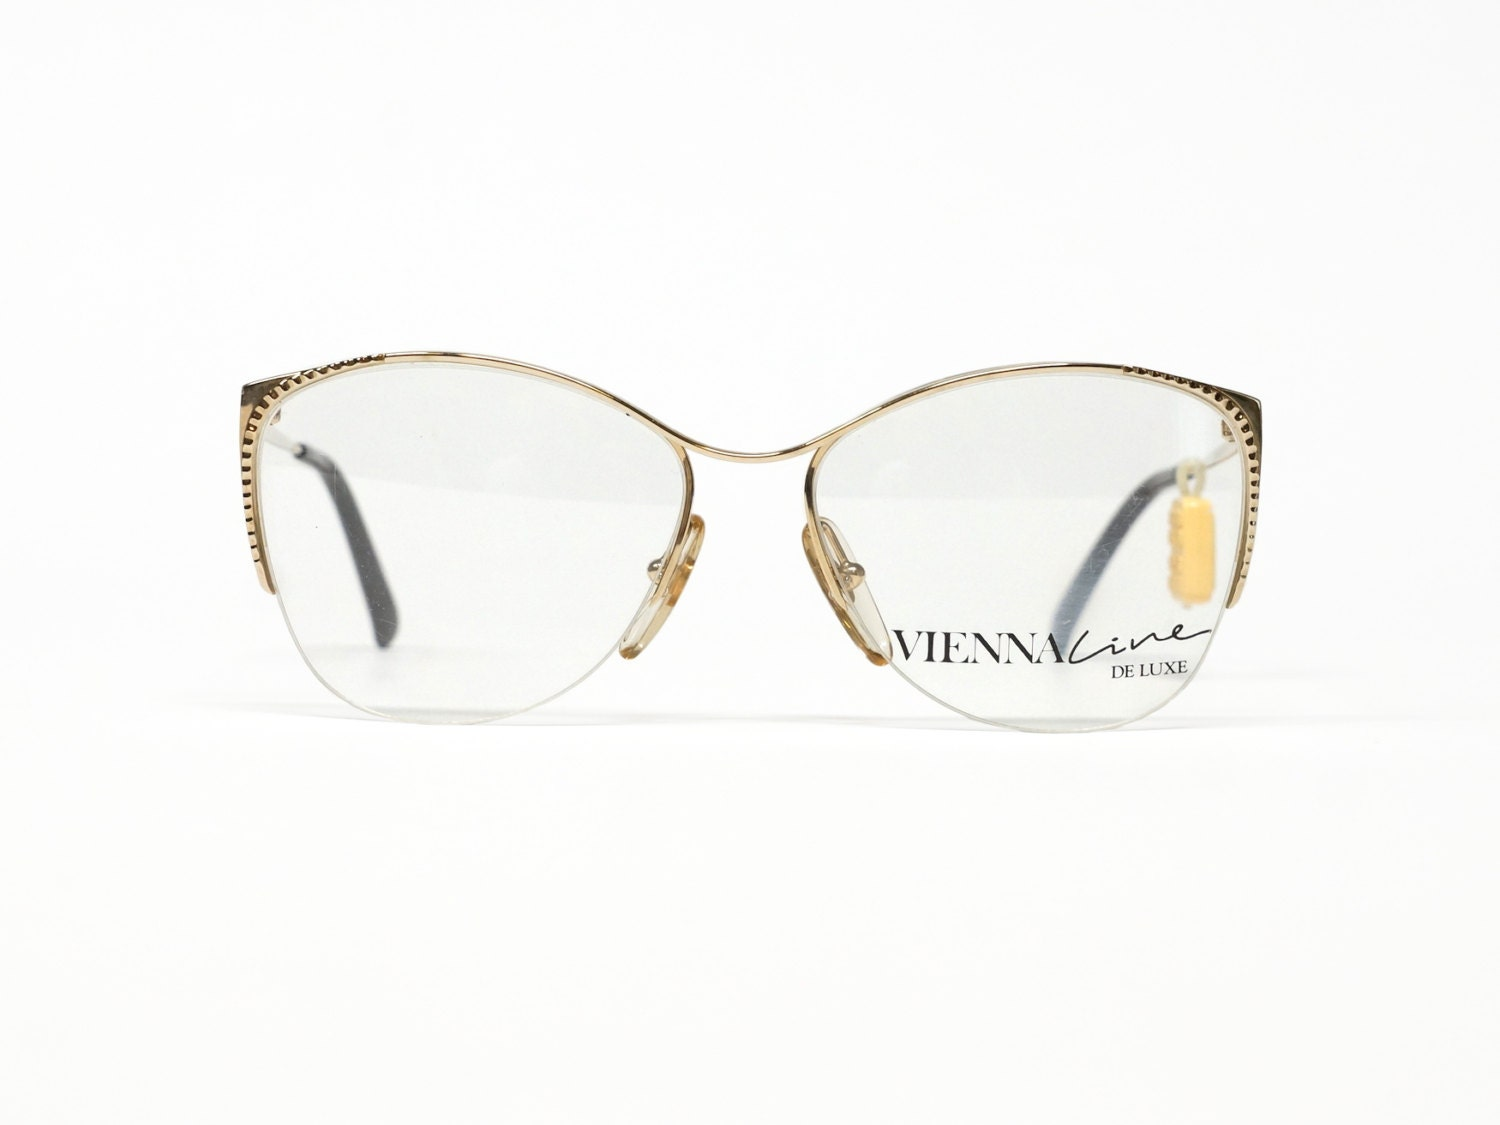 Half Rimmed Gold Eyeglass Frame by Vienna Line made in Germany